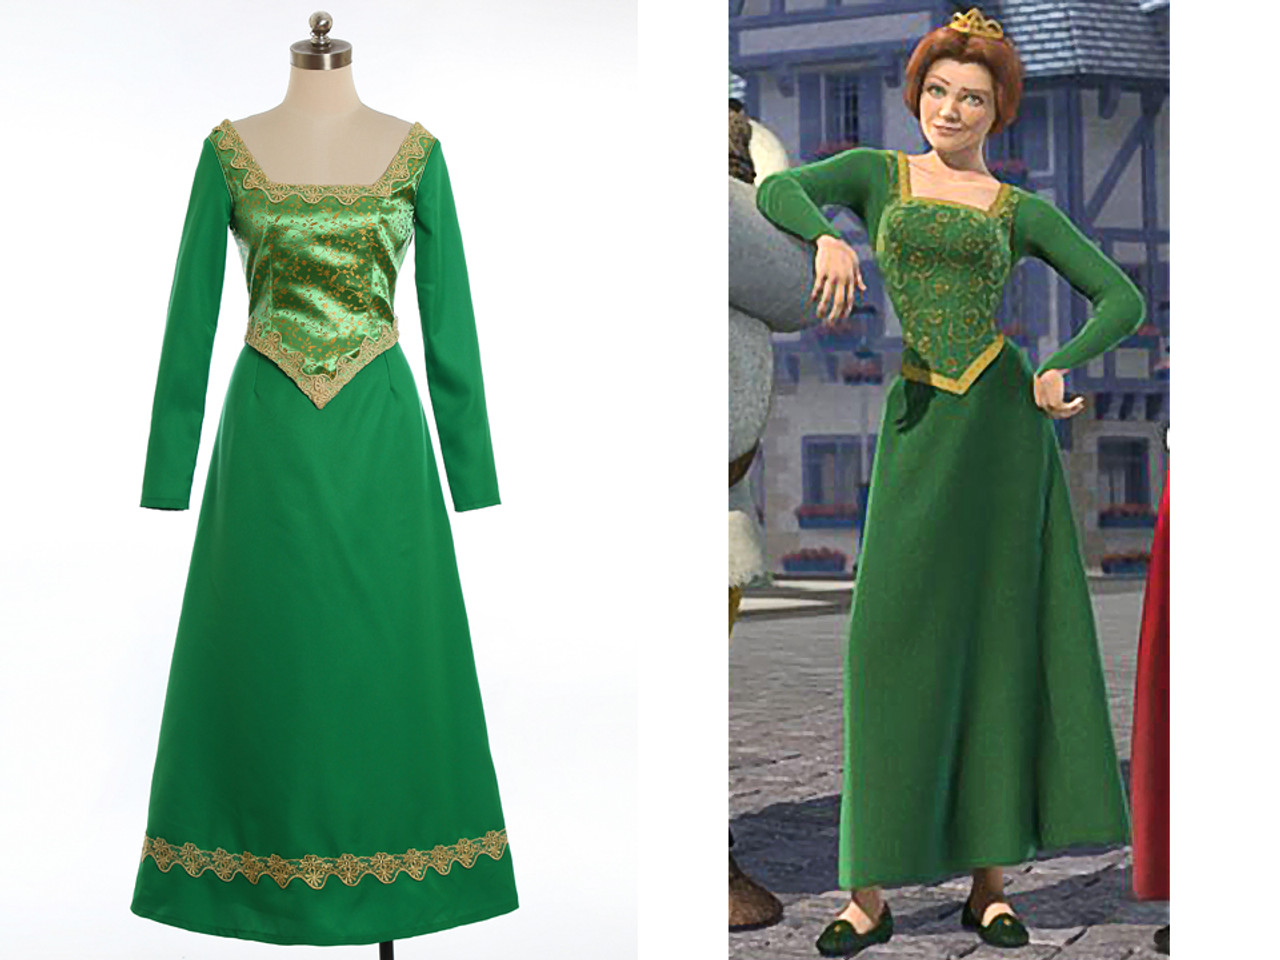 Disney Shrek Cosplay Princess Fiona Costume Renaissance Wedding Dress